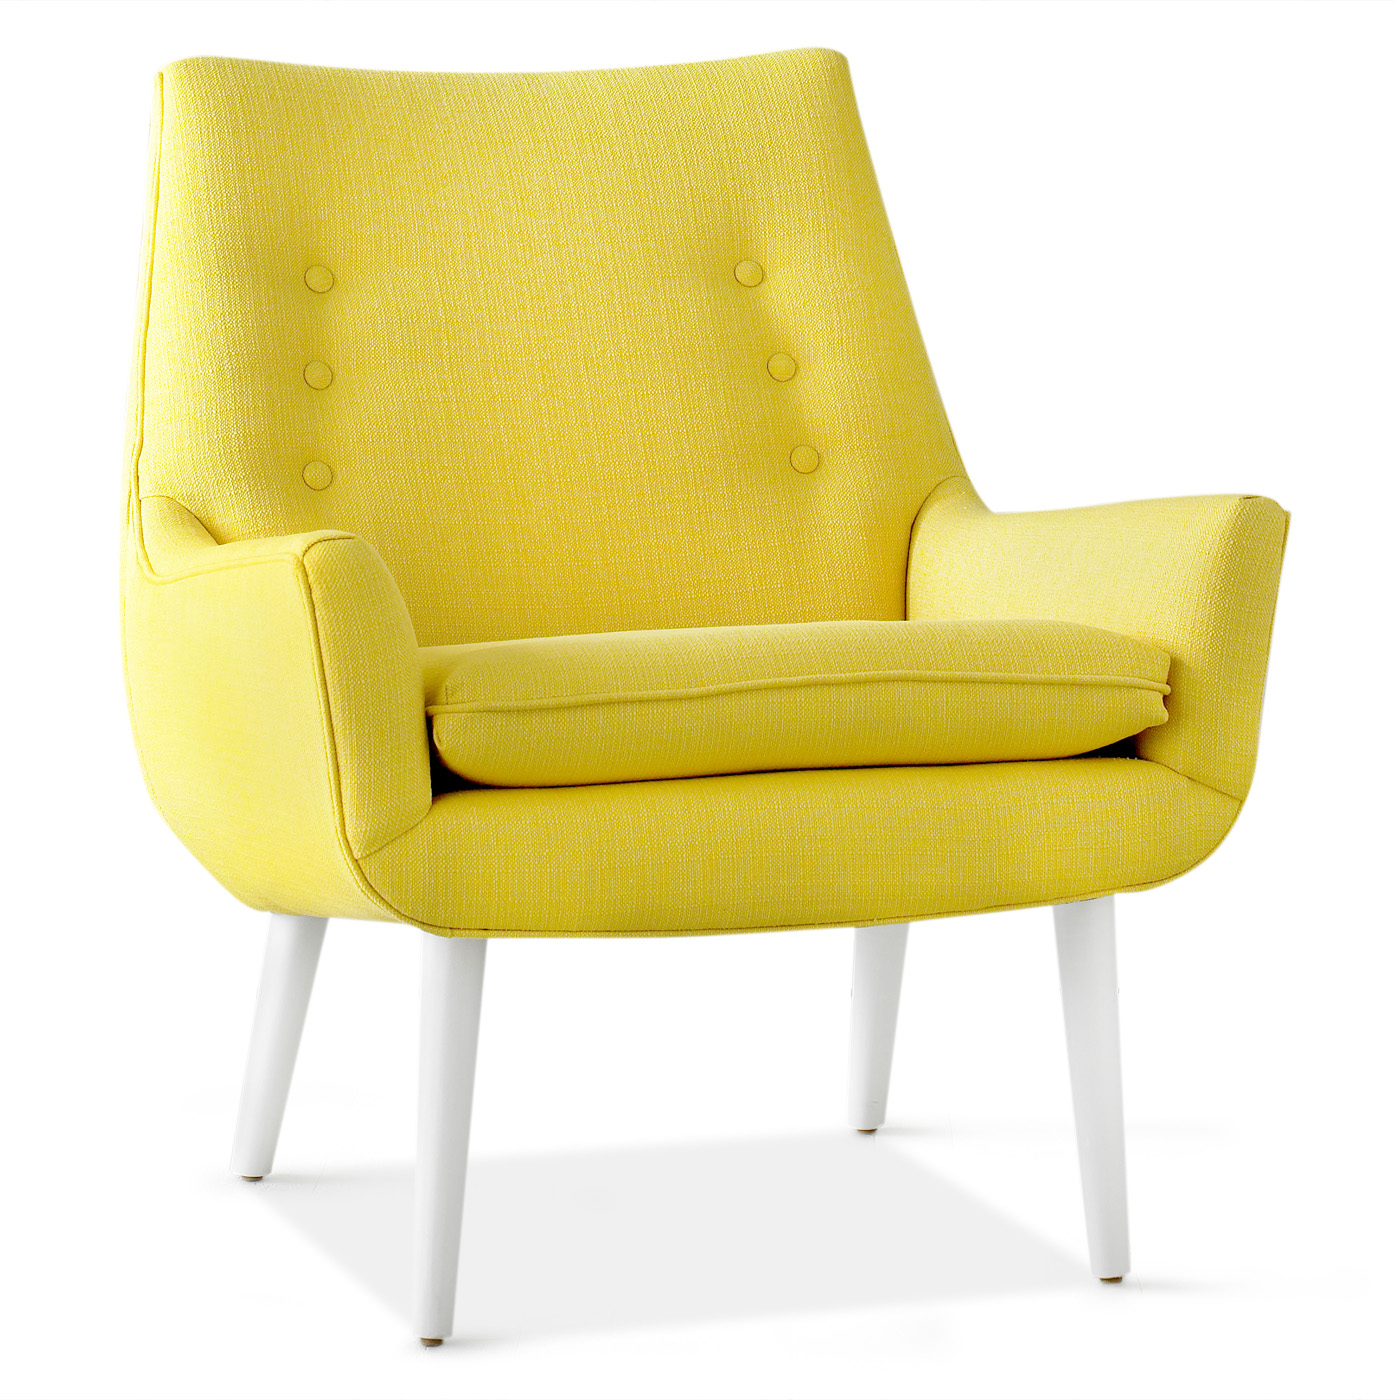 Contemporary canary colored accent chairs - Wednesday April 17 2013